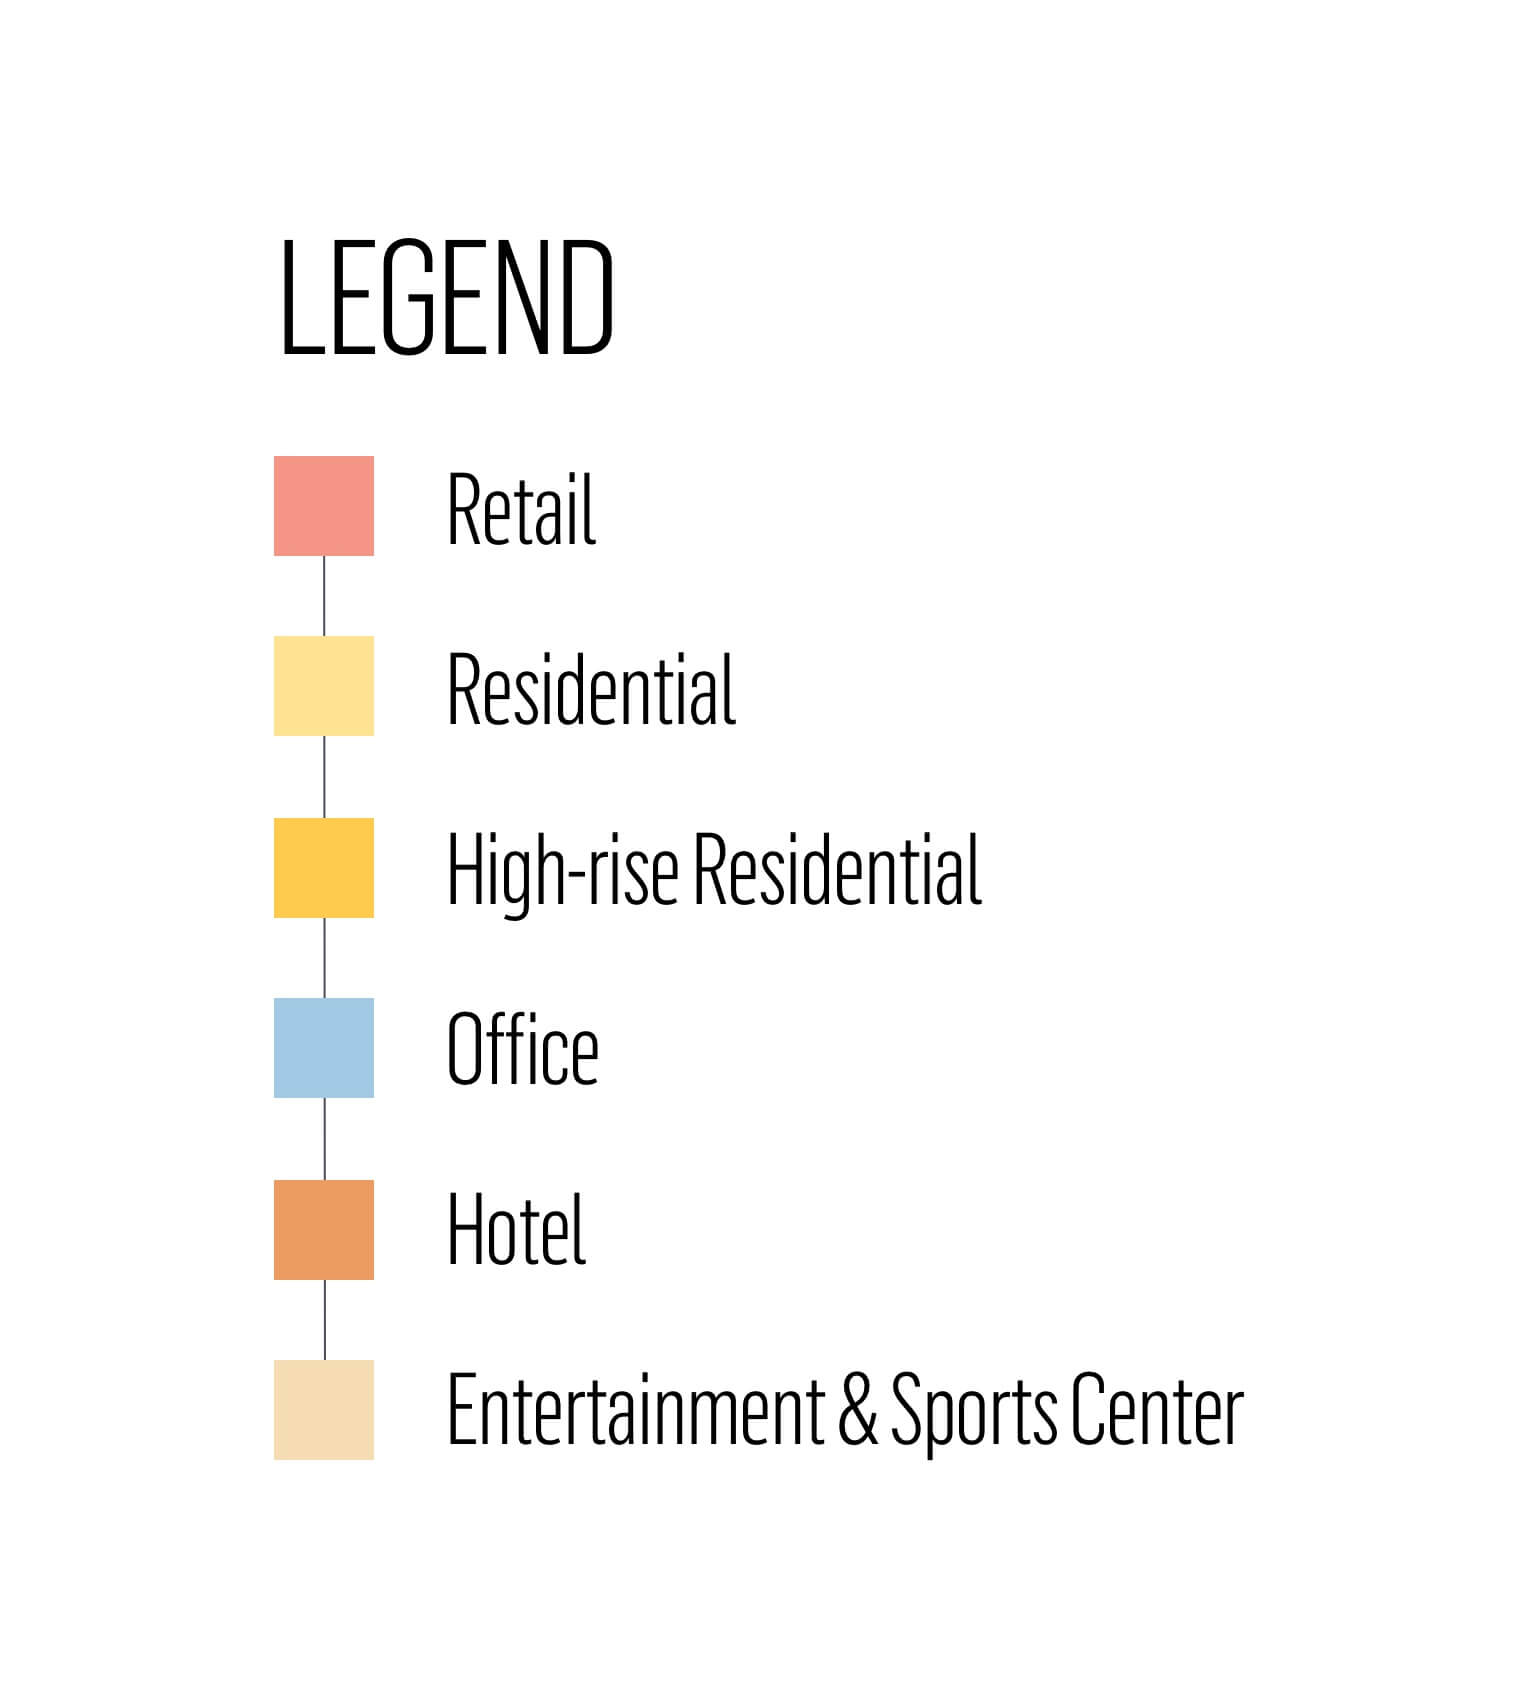 Warner Center Plan - Podium Legend